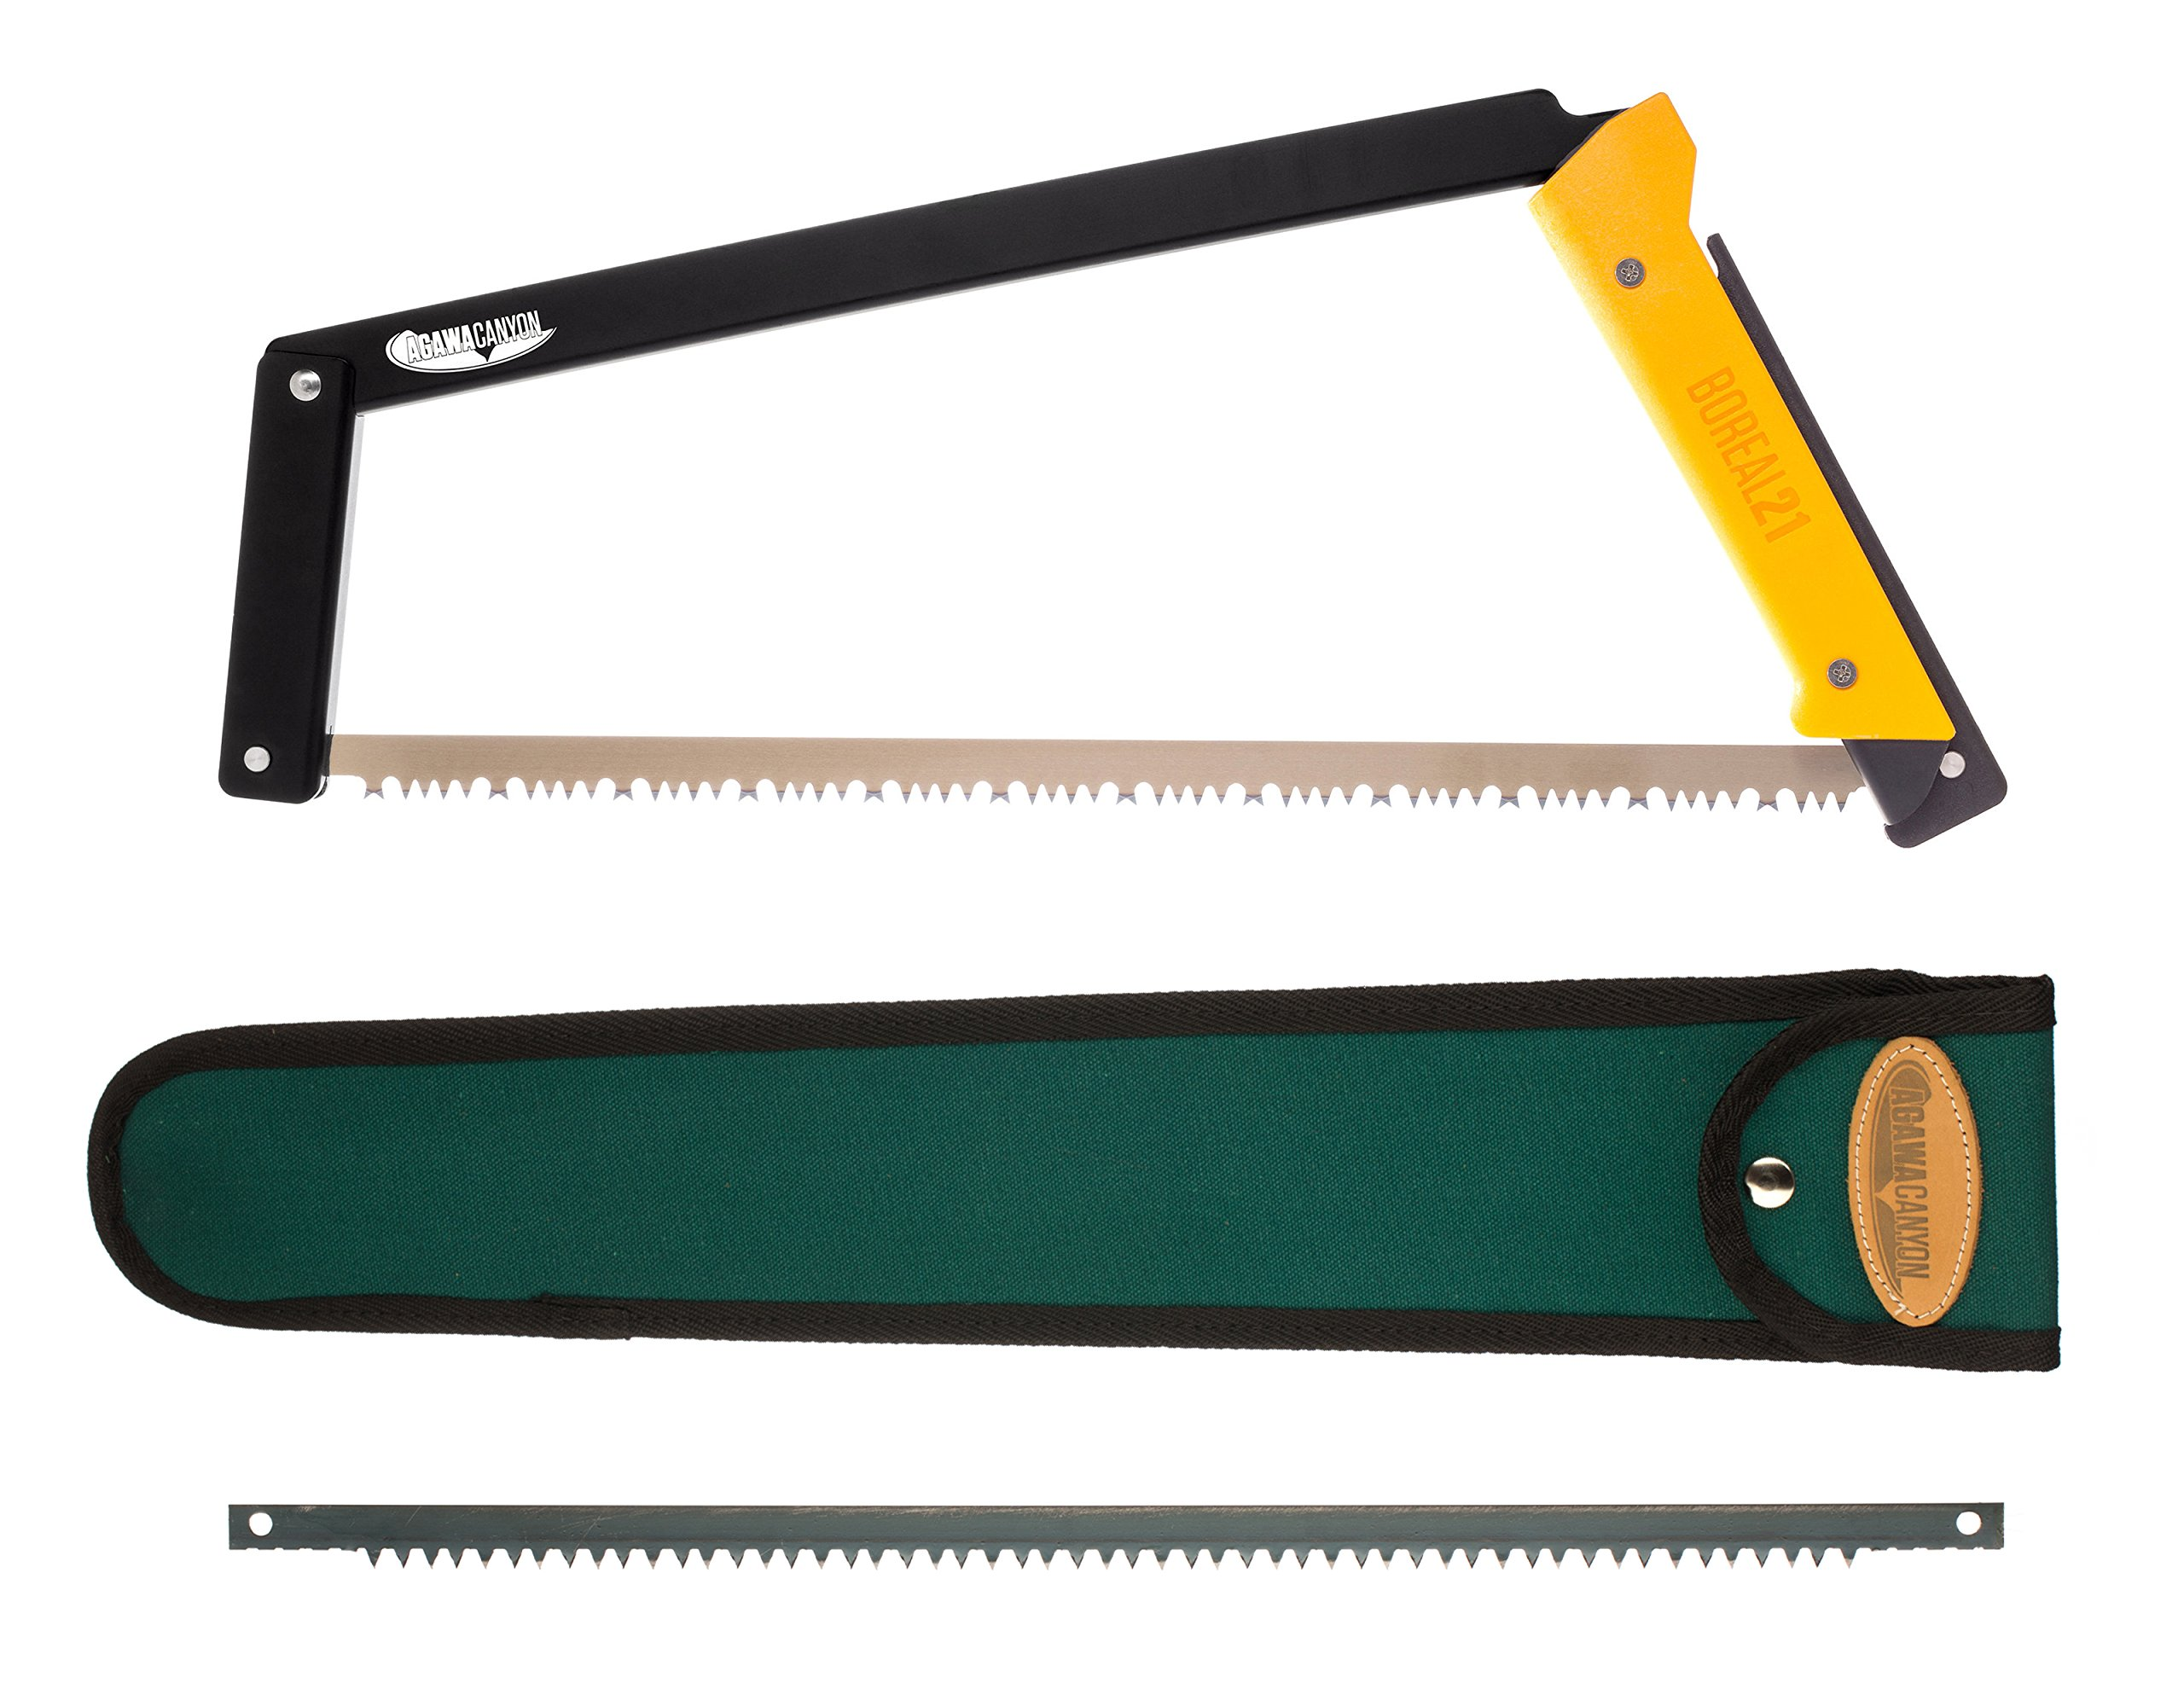 Agawa Canyon - BOREAL21 Tripper Kit - (21inch folding bow saw with all-purpose blade, canvas sheath, extra aggressive ''Sidney Rancher'' blade)